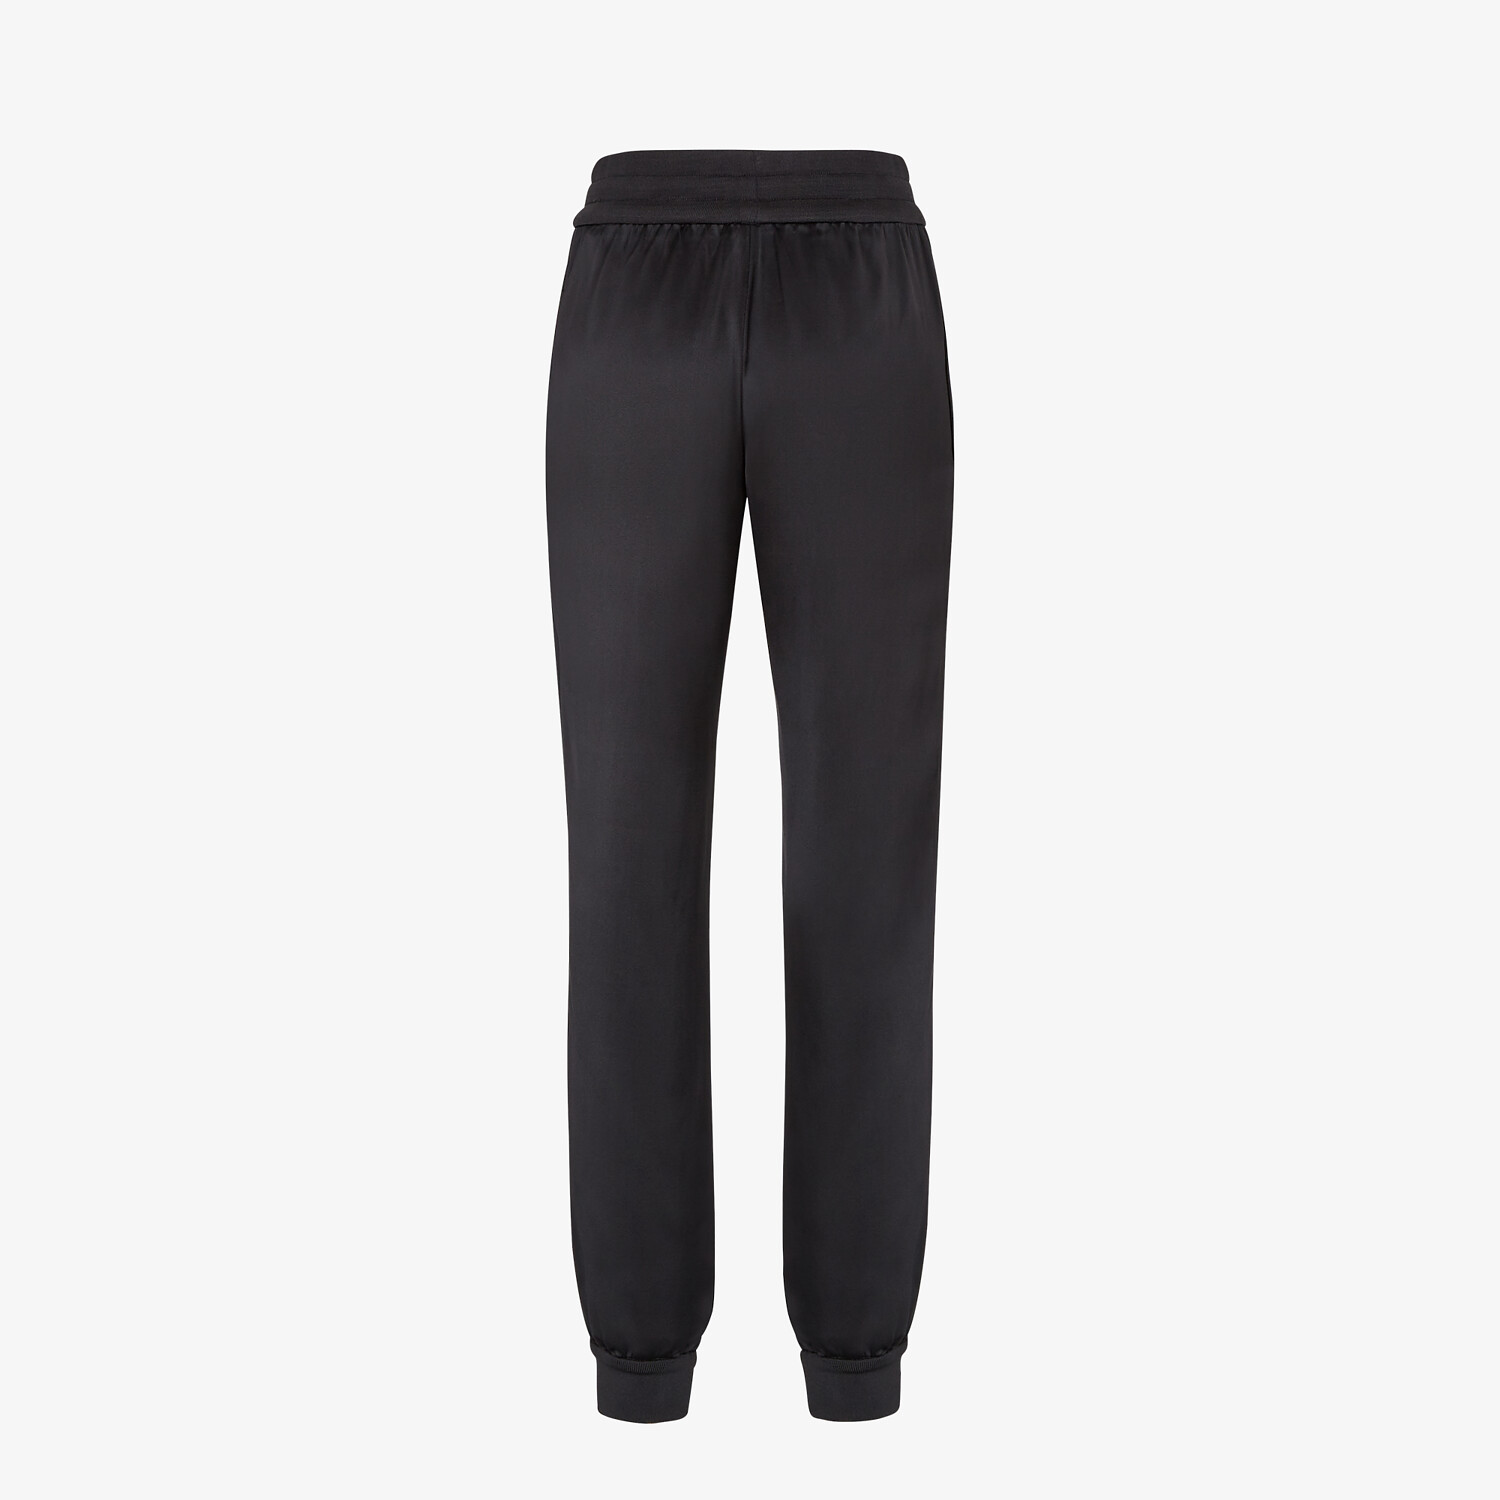 FENDI JUMPSUIT - Black satin sweatshirt and pants - view 5 detail